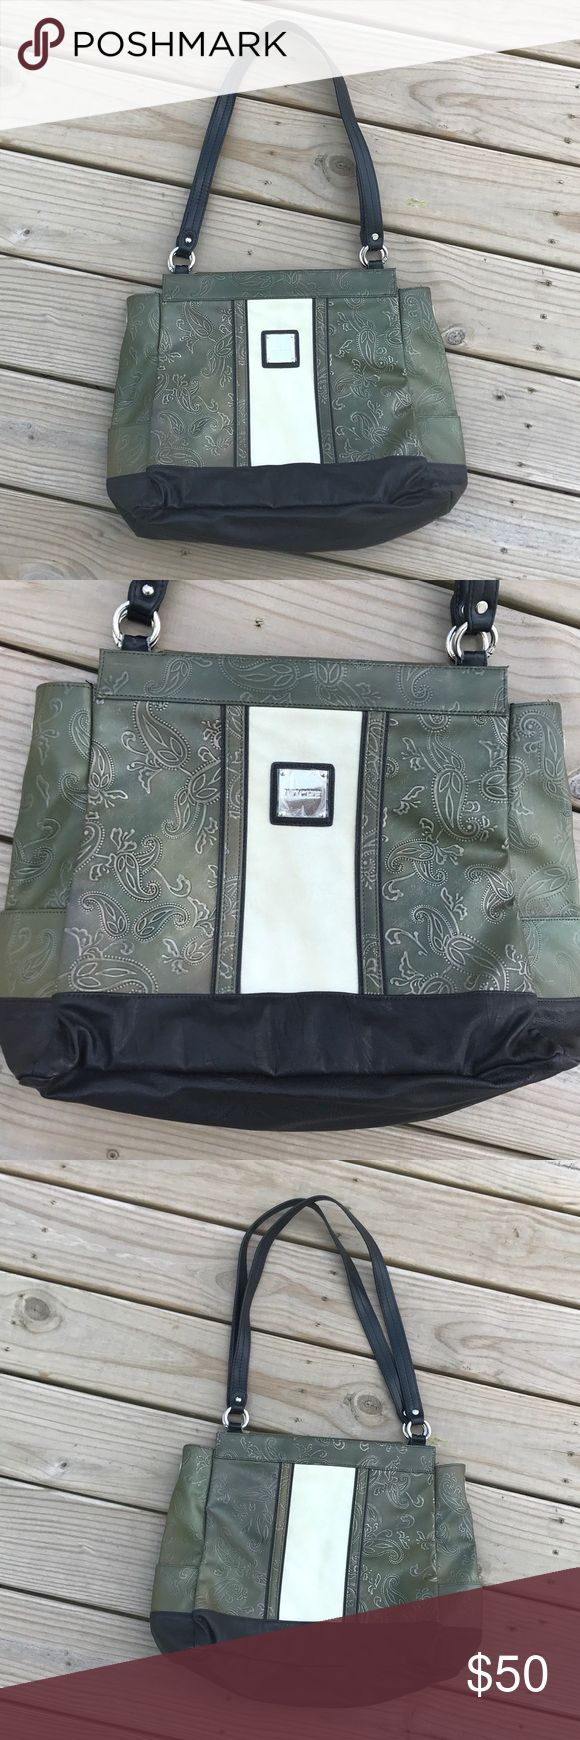 Genuine Miche Bag Purse -Must See Black base with removable shell. The plastic wrap cover has never been removed from the Miche logo tag. Shell has a very trendy look in moss green, ivory and brown. Check out the detail!  Inside is clean but has a pen mark or two as shown in the photo. Smoke free. Miche Bags